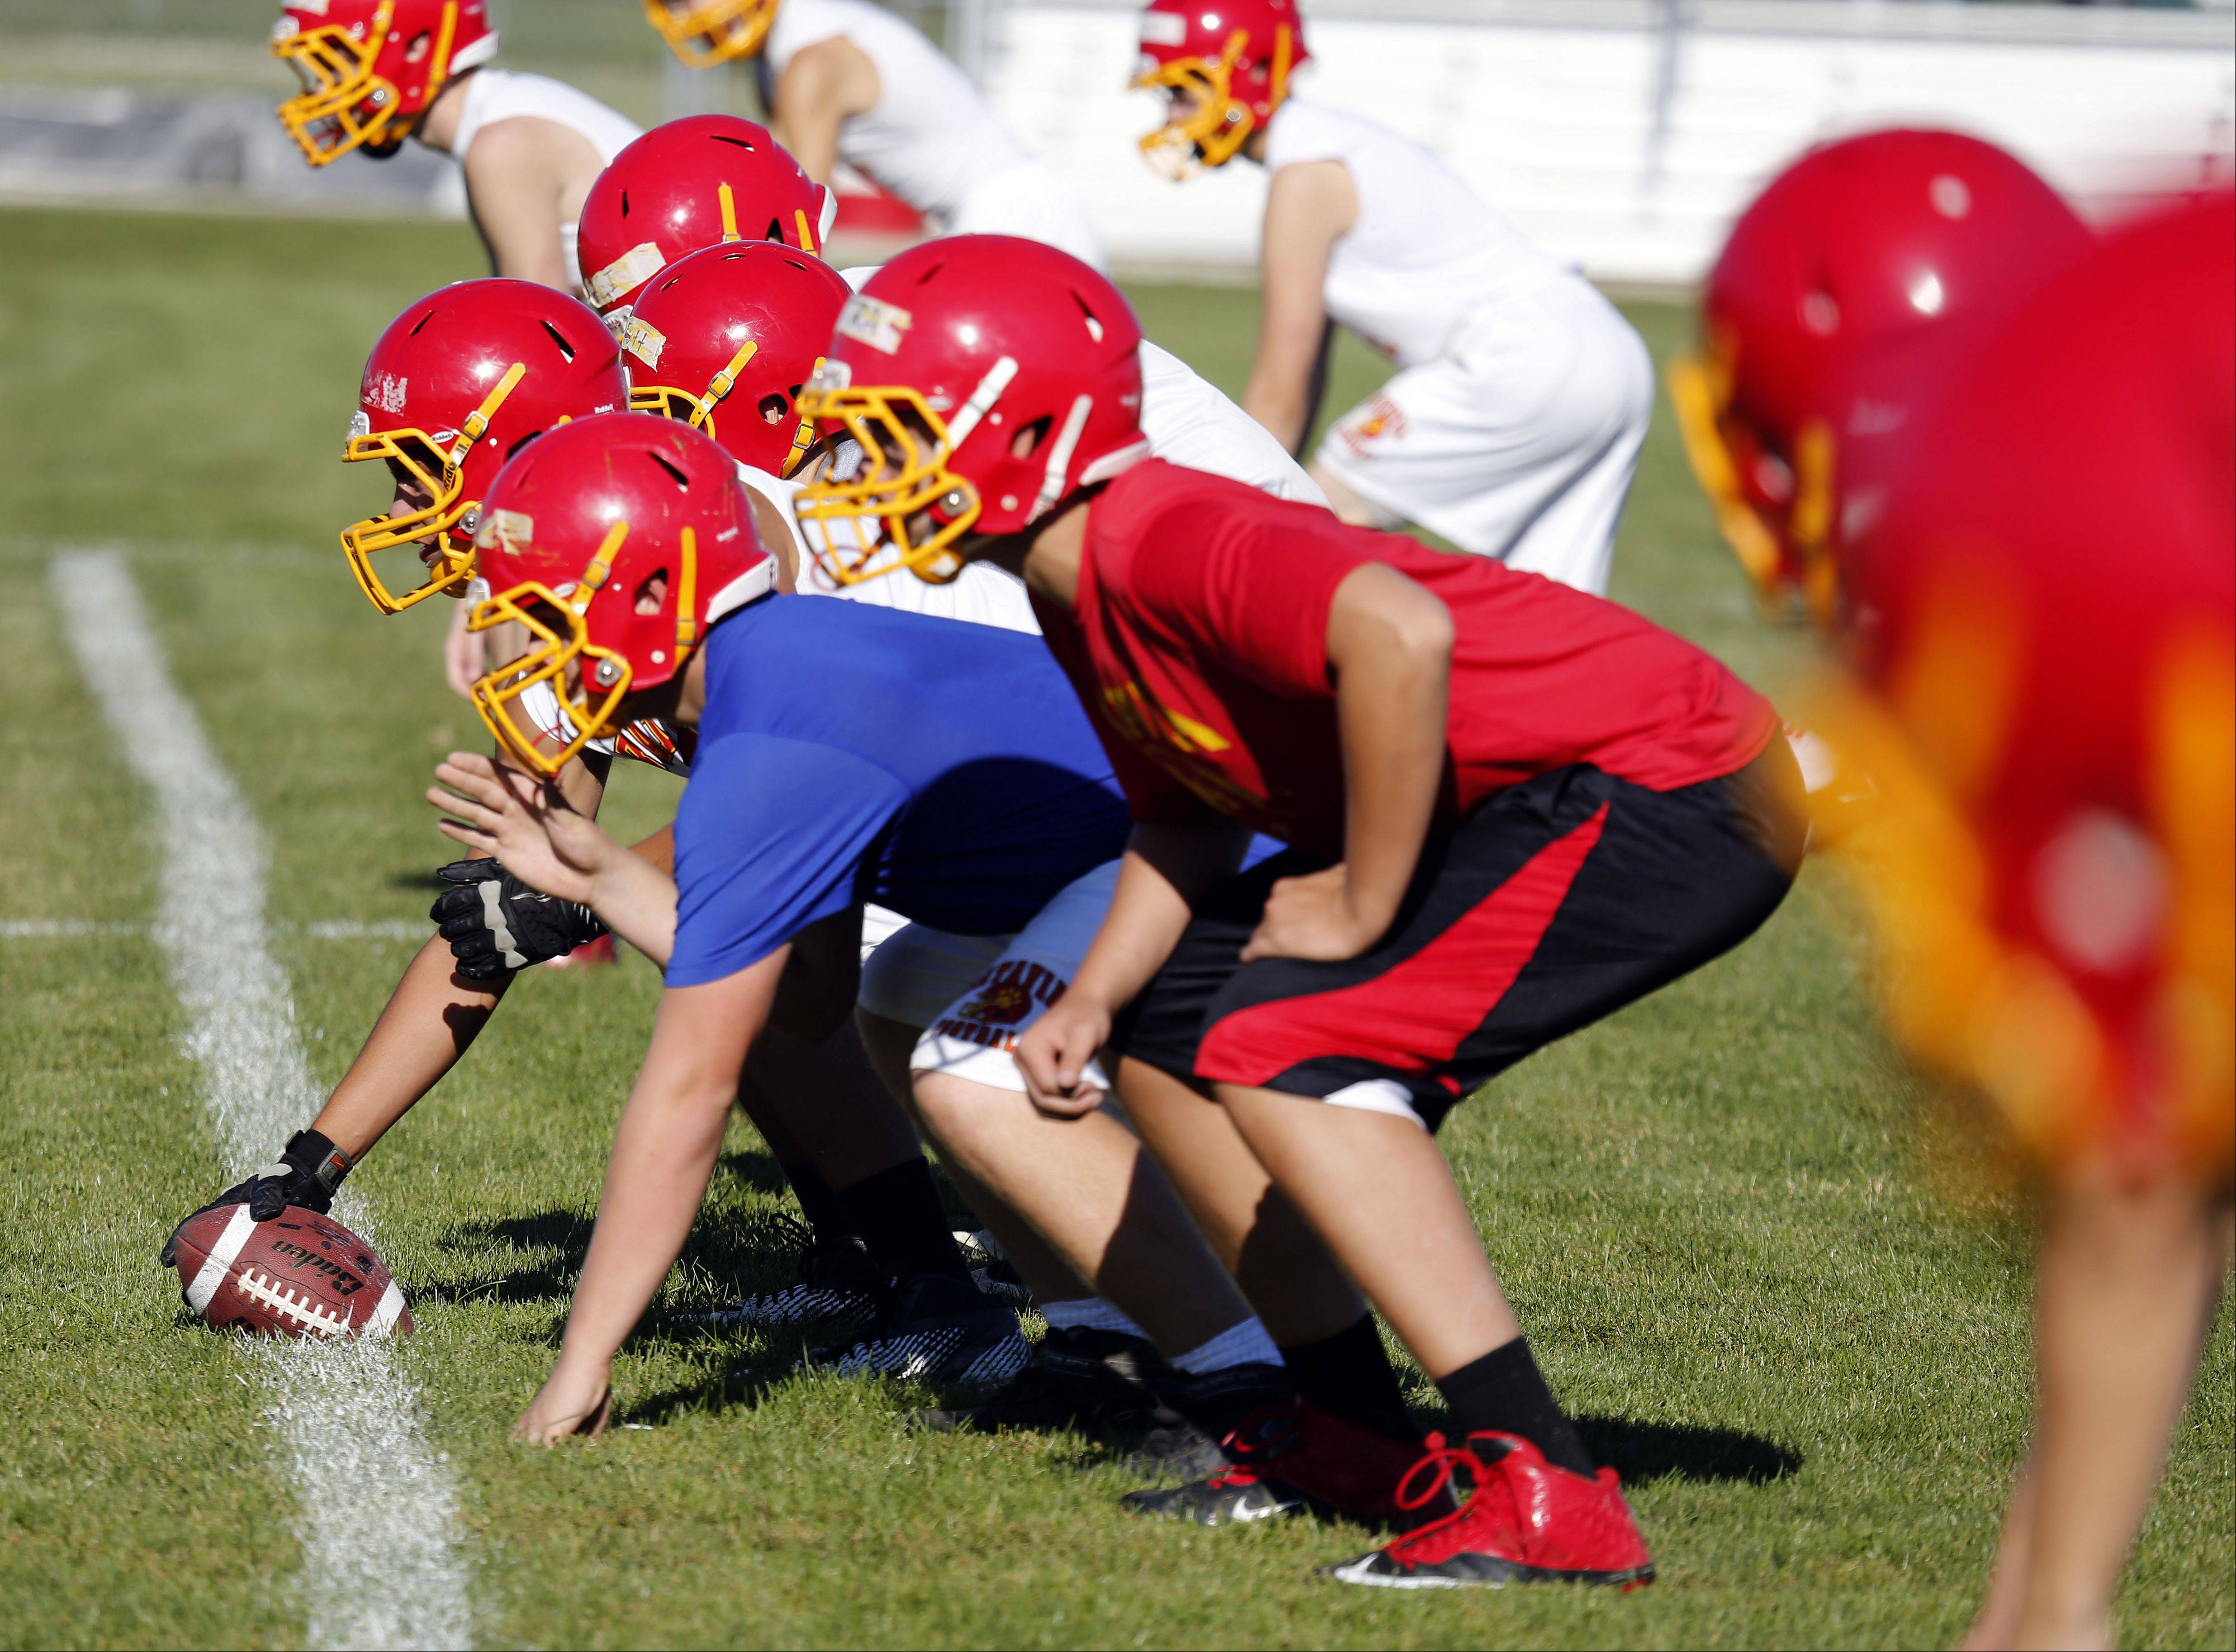 Brian Hill/bhill@dailyherald.comThe offense lines up during the first day of football practice at Batavia High School Wednesday.